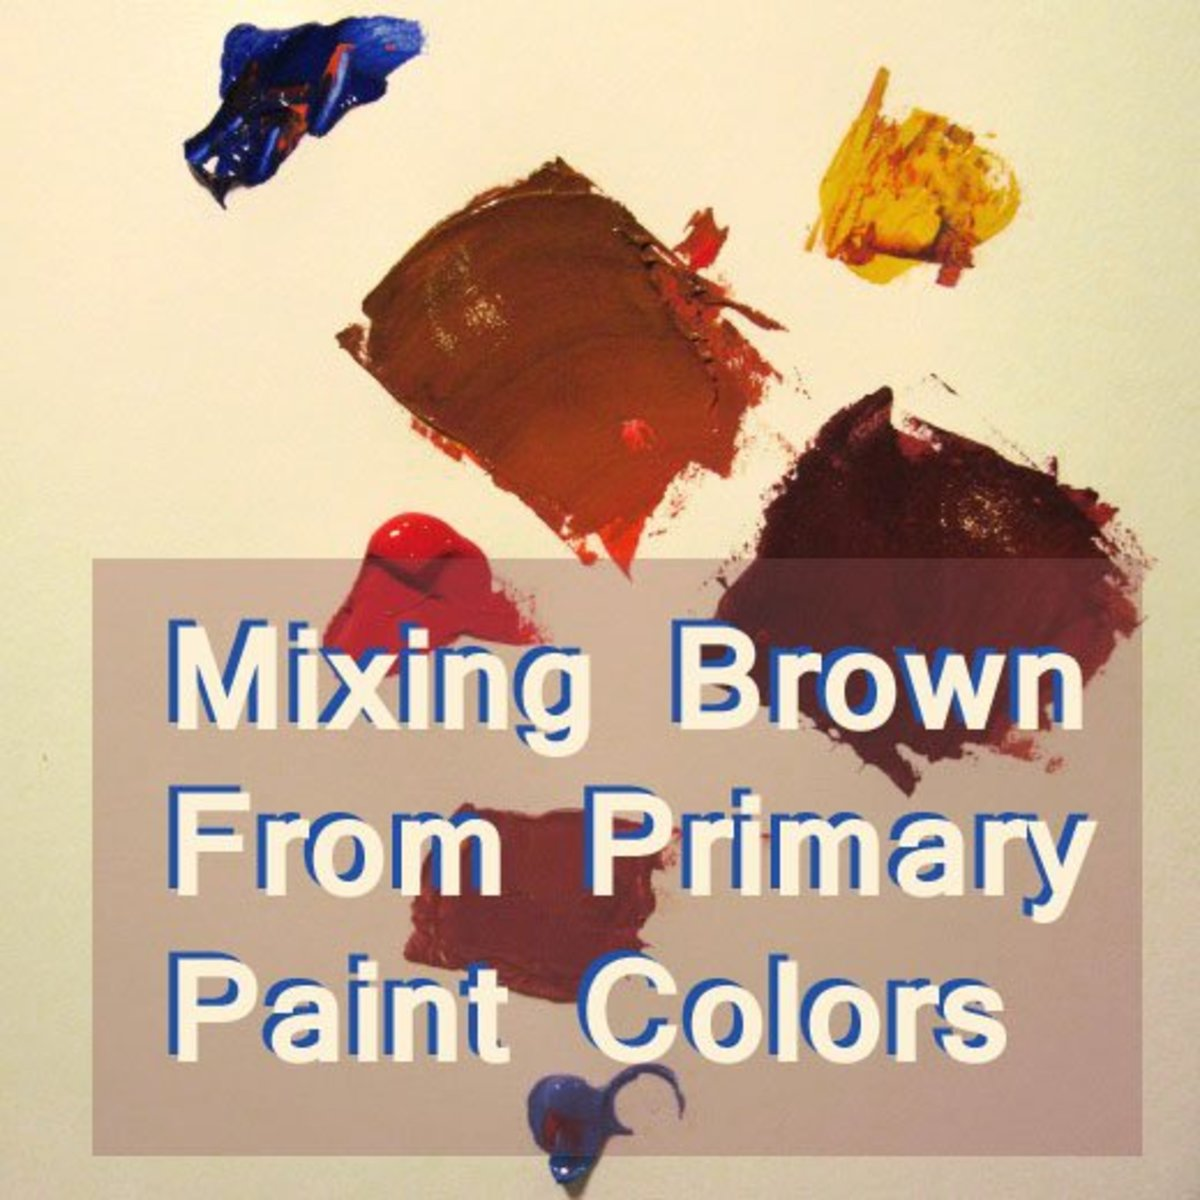 How to Mix Brown from a Limited Palette of Primary Colors